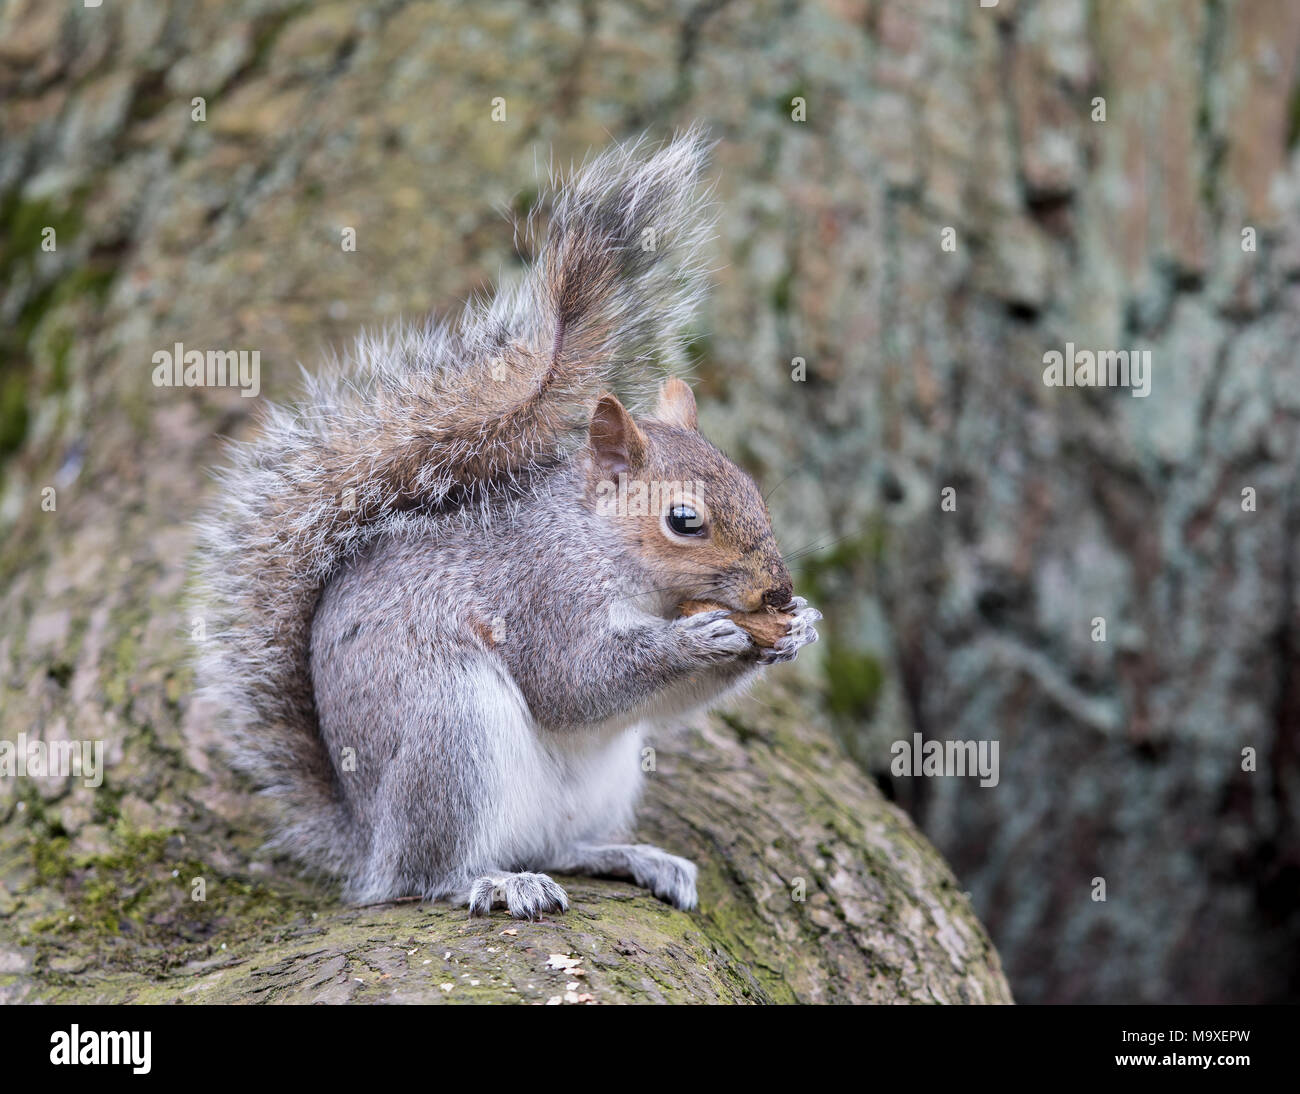 Squirrel eating nut in a tree / Sciuridae / Squirrel with nut - Stock Image